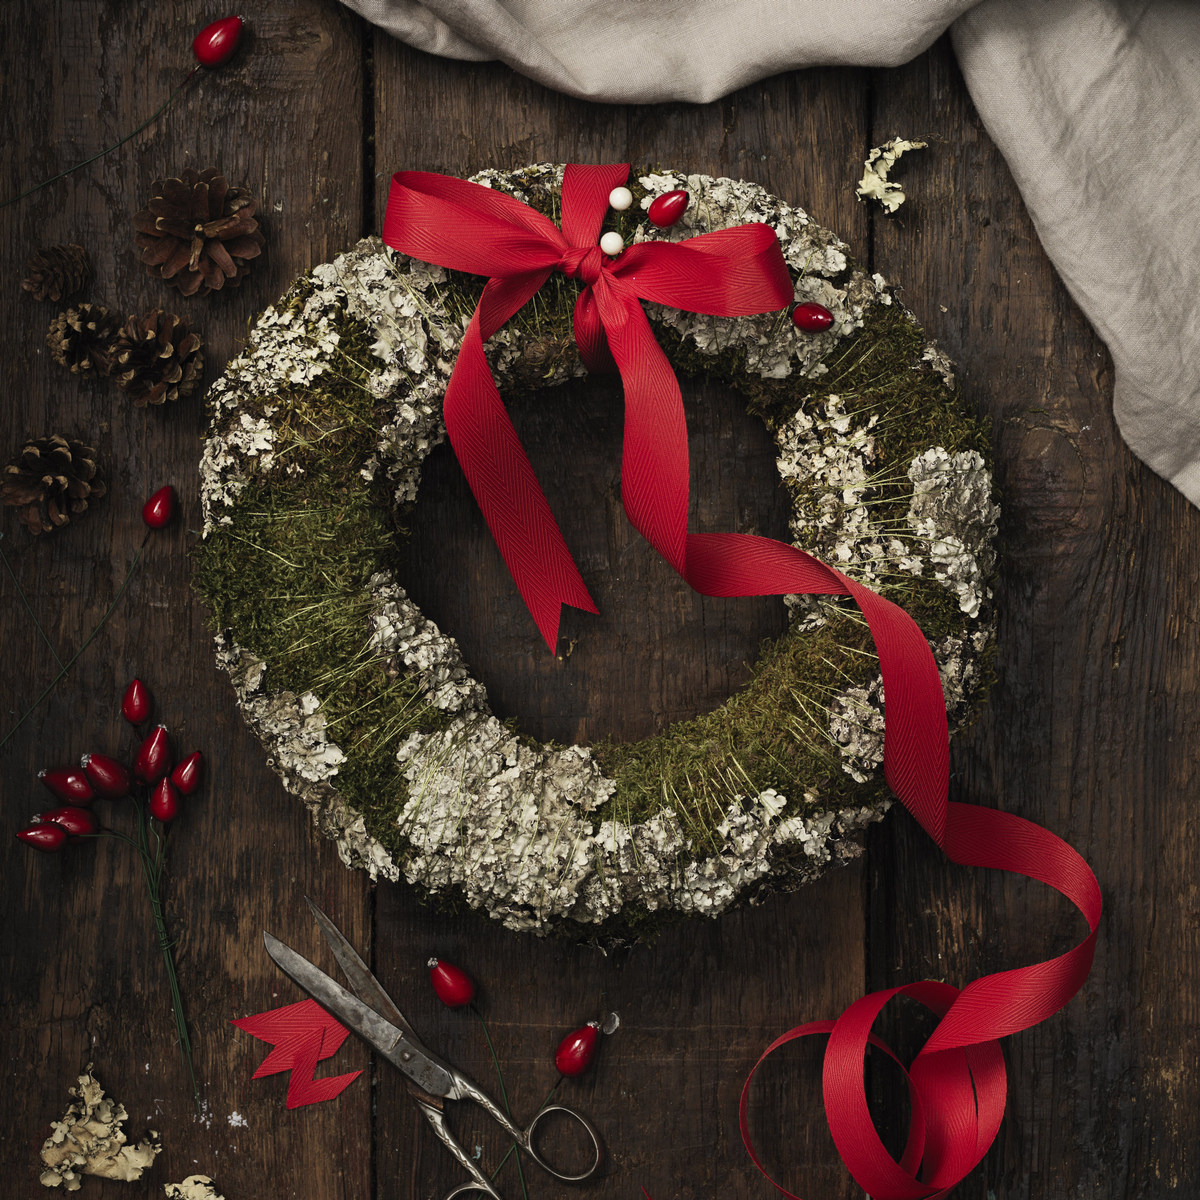 Make a Christmas wreath with moss